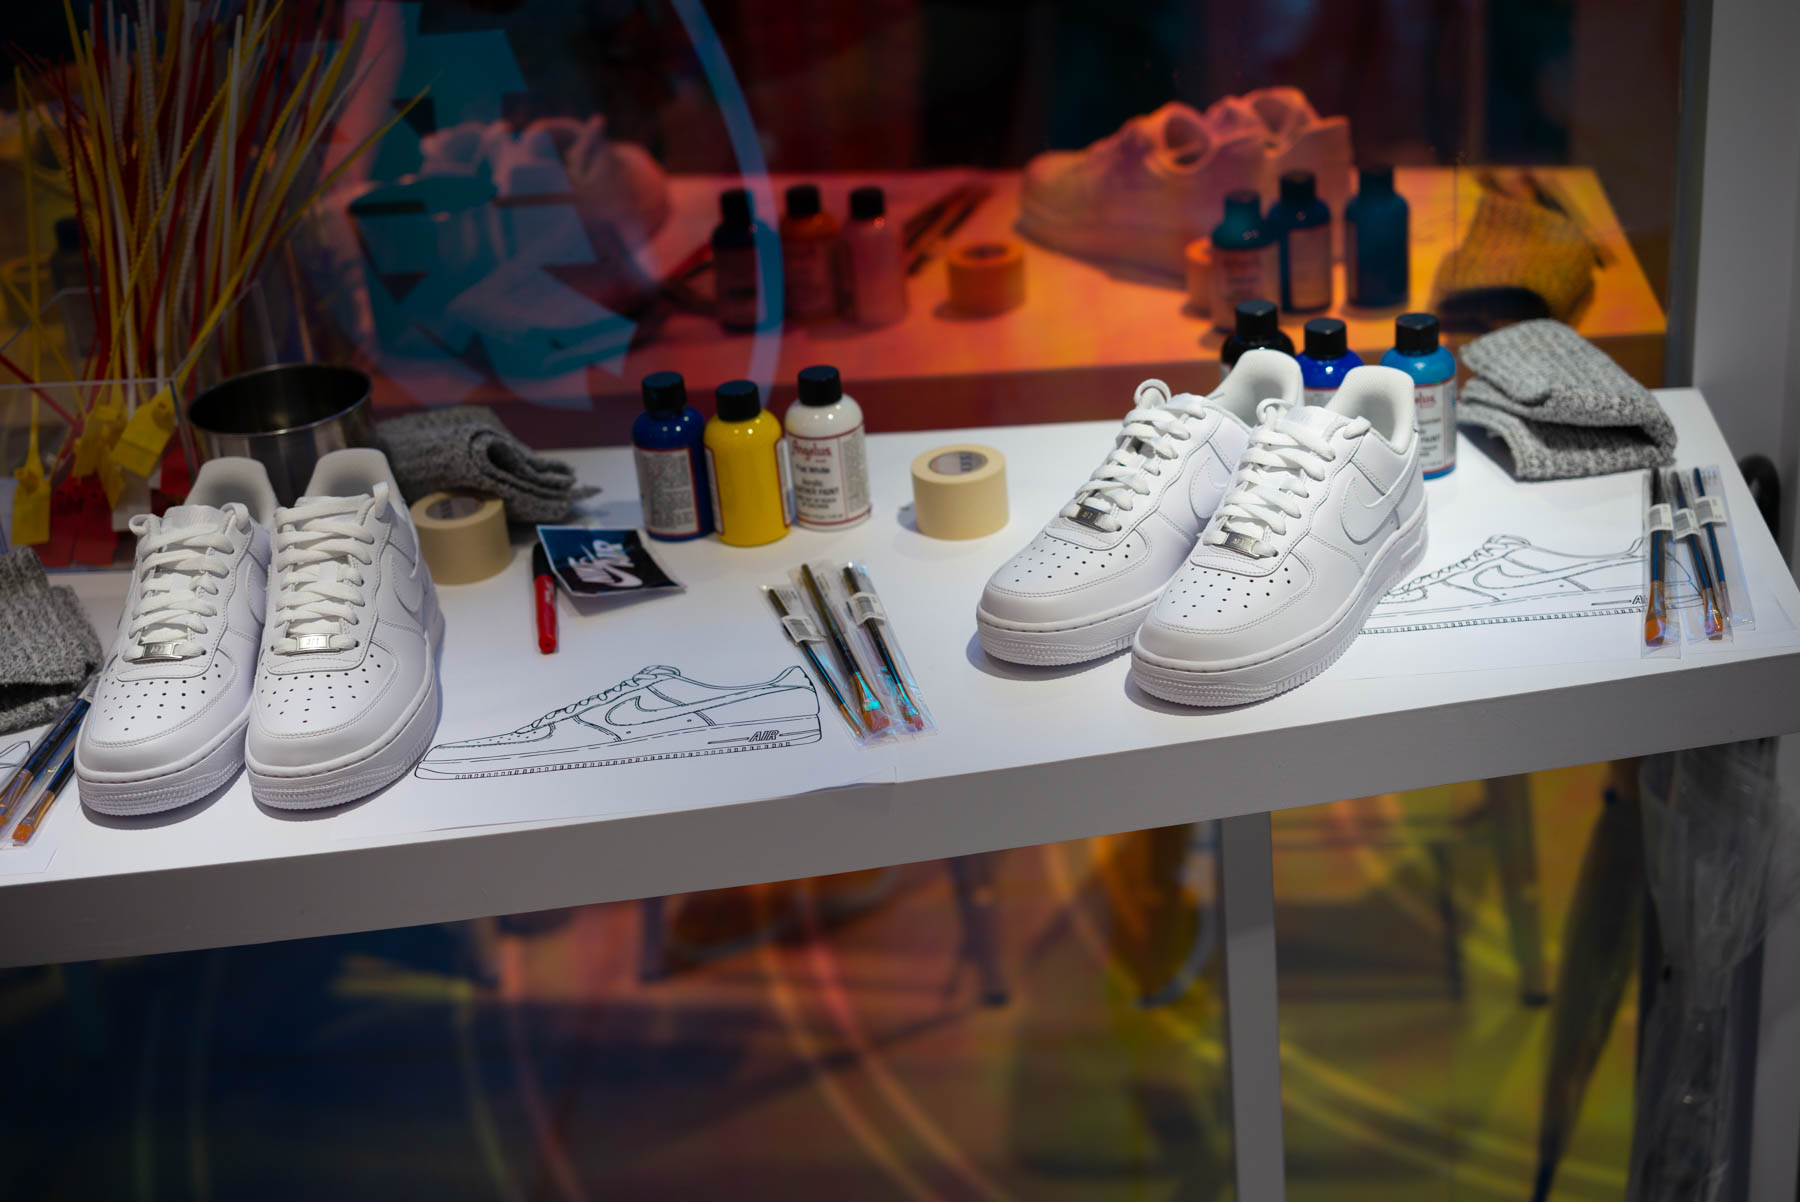 20180928-nike-airforce1-vogue-fashion-night-out-1009441